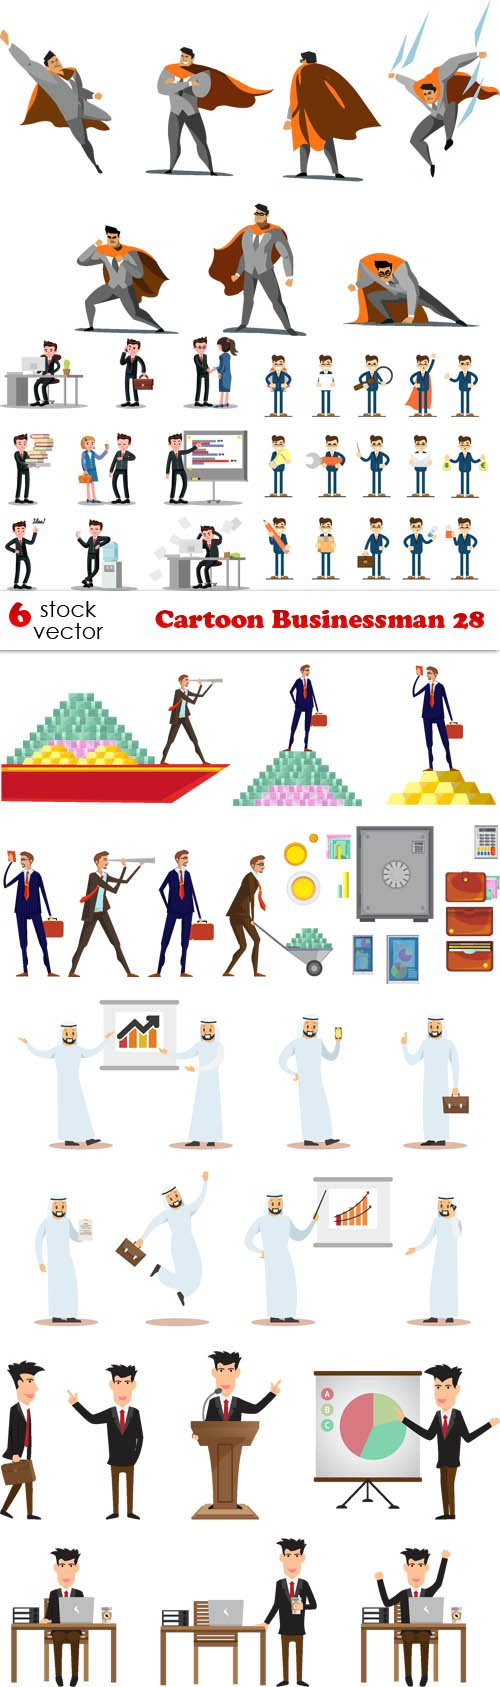 Vectors - Cartoon Businessman 28